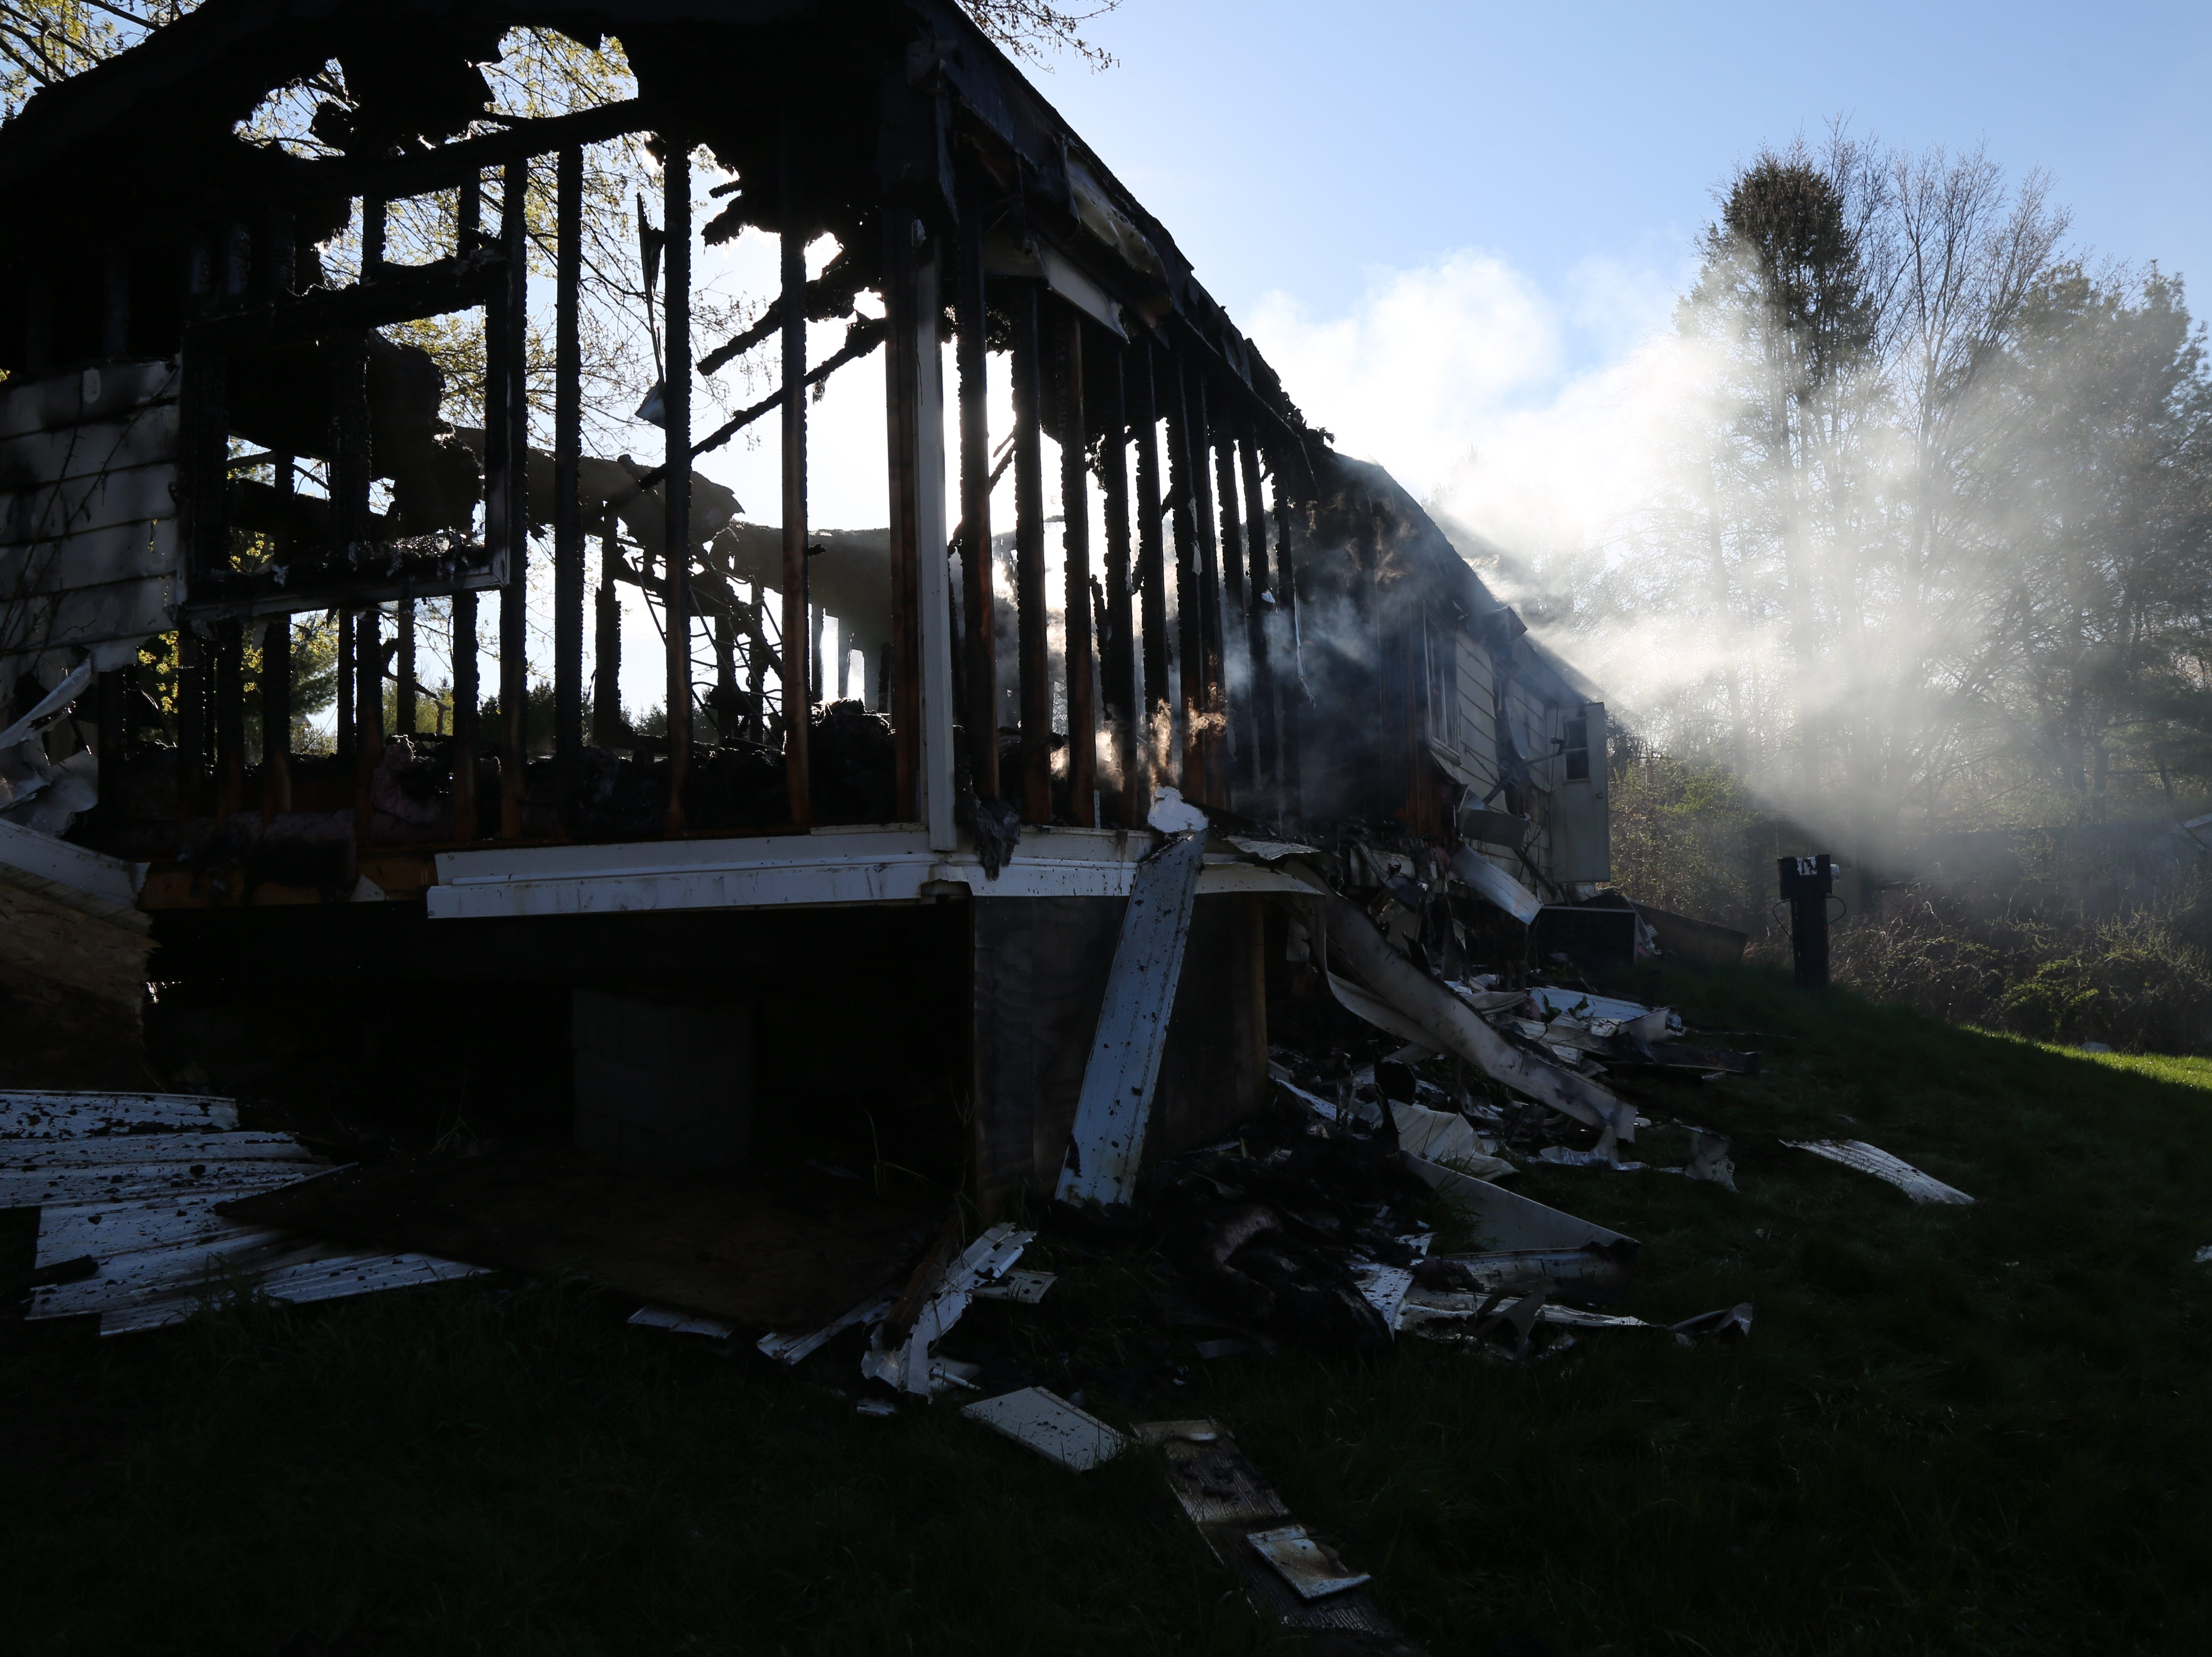 A Dover Plains trailer home was destroyed in a fire Thursday morning as seen on April 25, 2019.